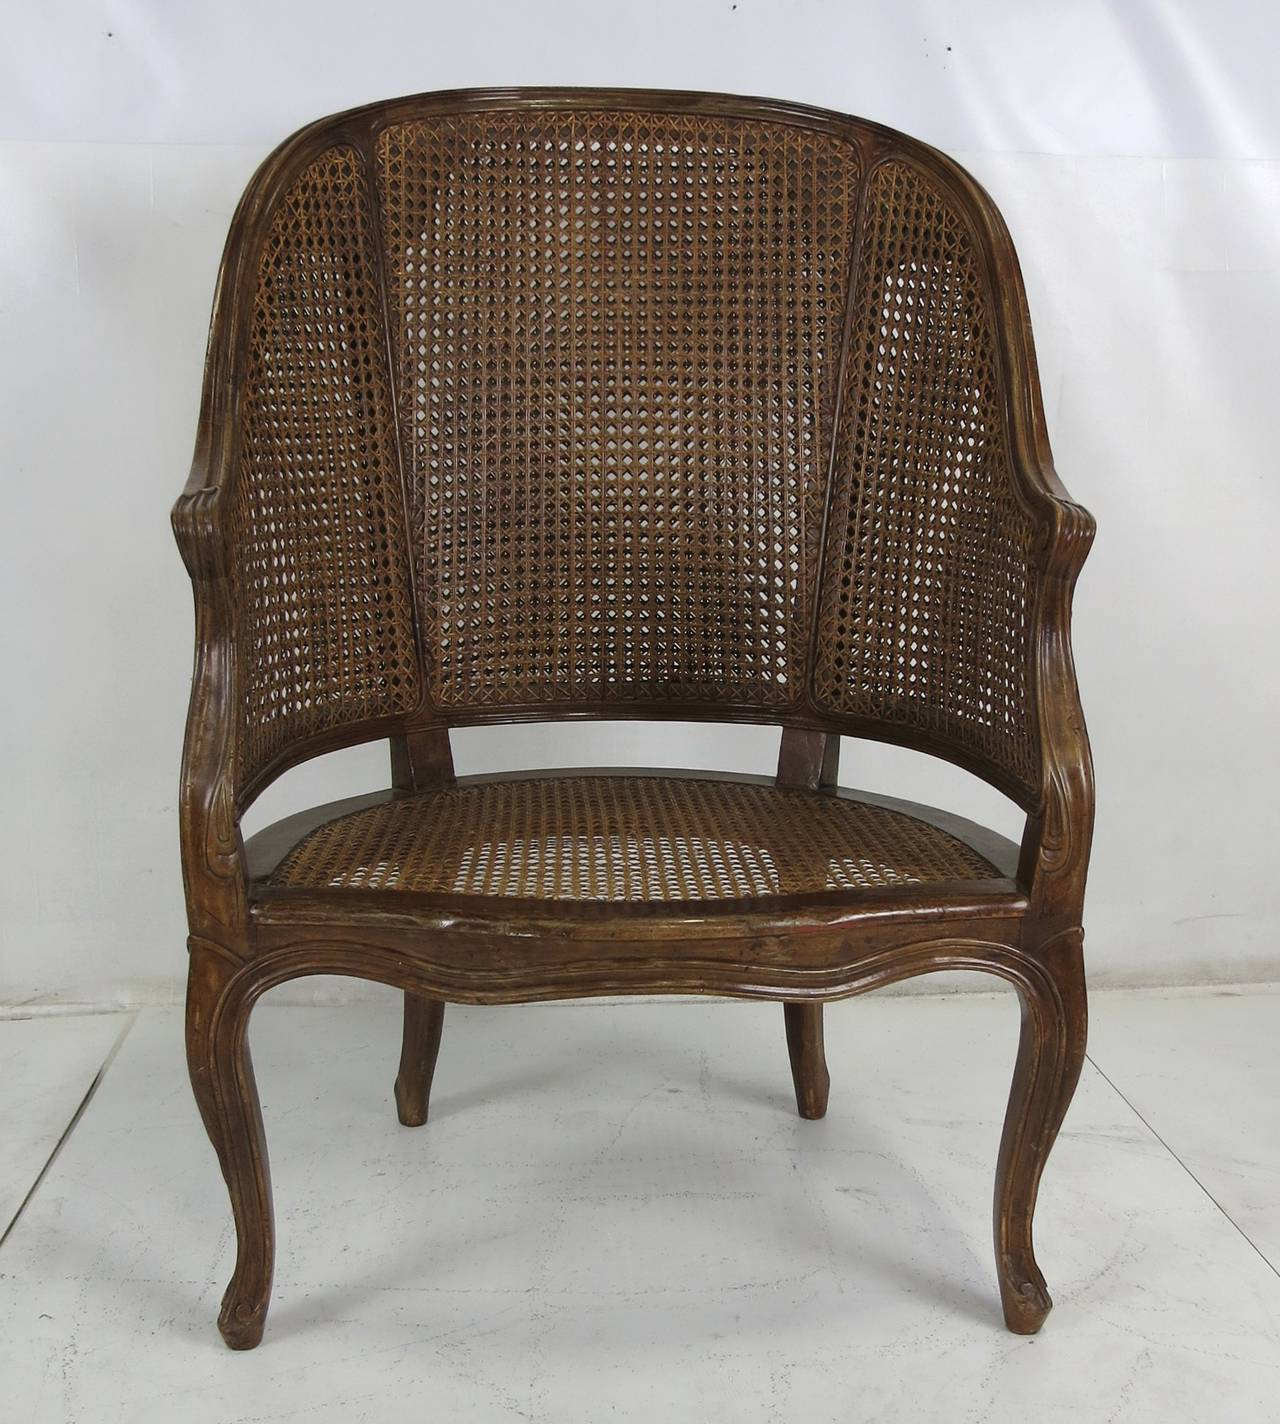 Beautifully carved and crafted Louis XV style barrel chair with hand-caned seat and double-caned back. Branded on bottom,